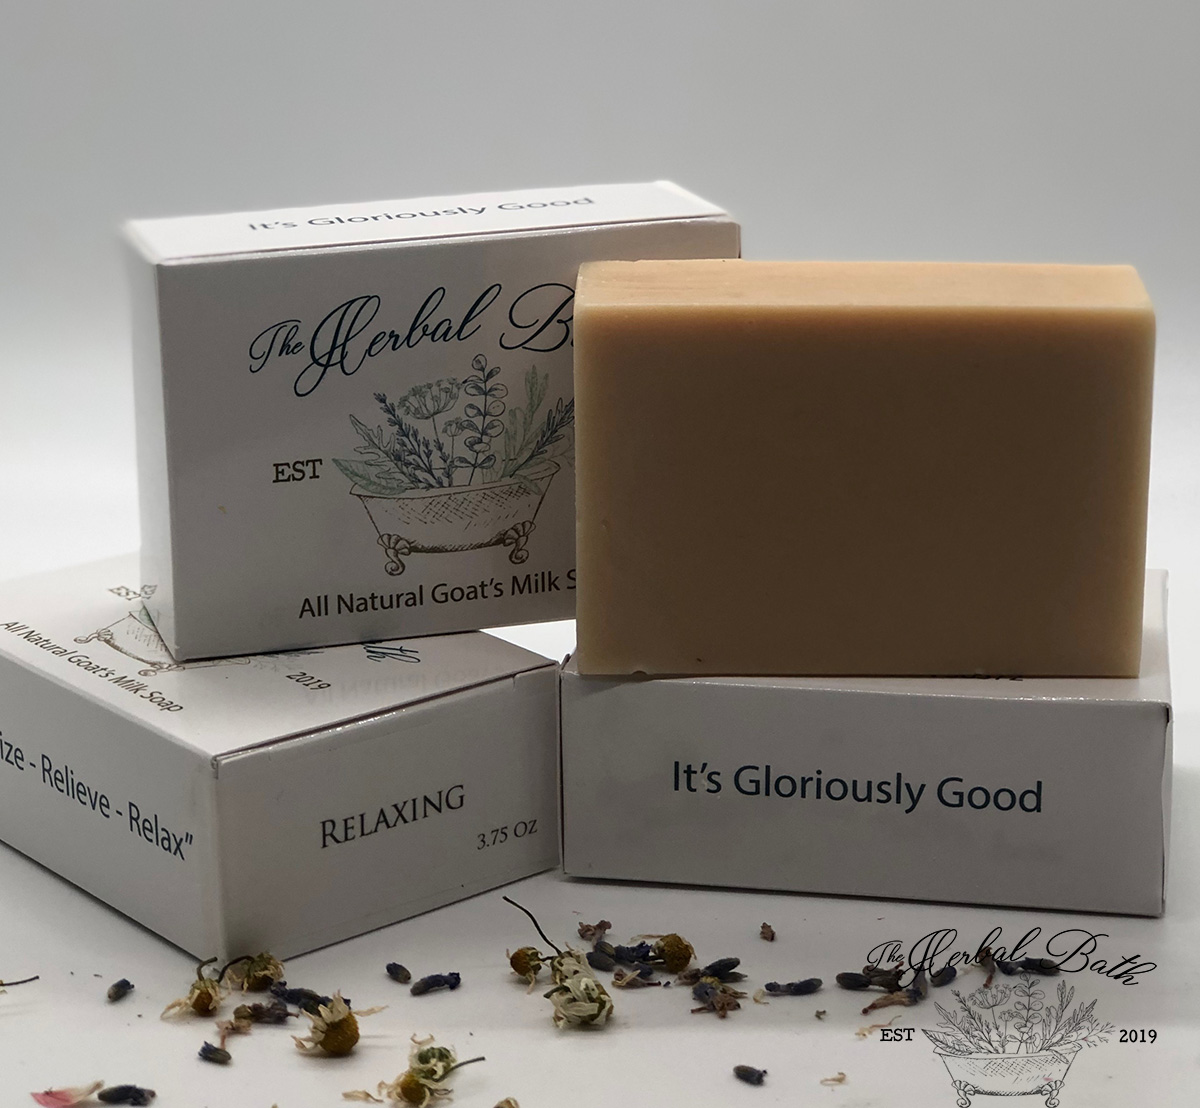 Relaxing Signature Blend-Goat's milk soap